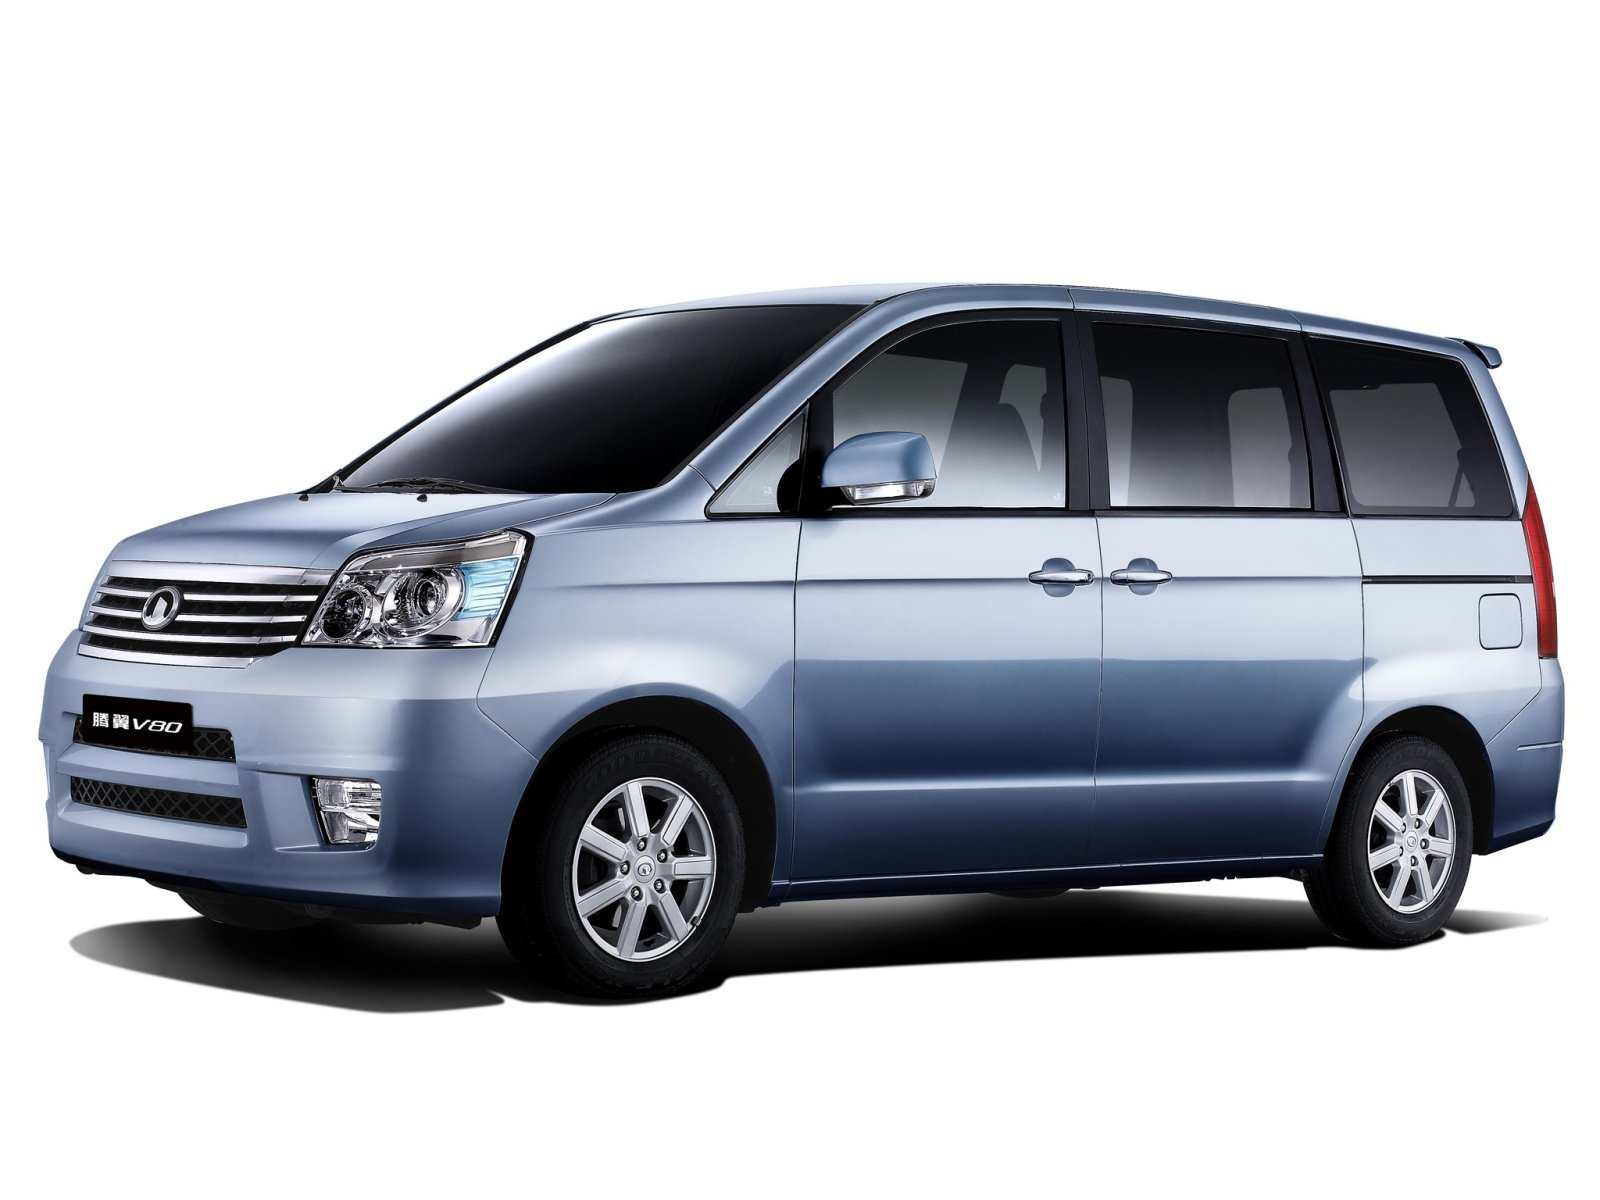 GREAT WALL COWRY MPV